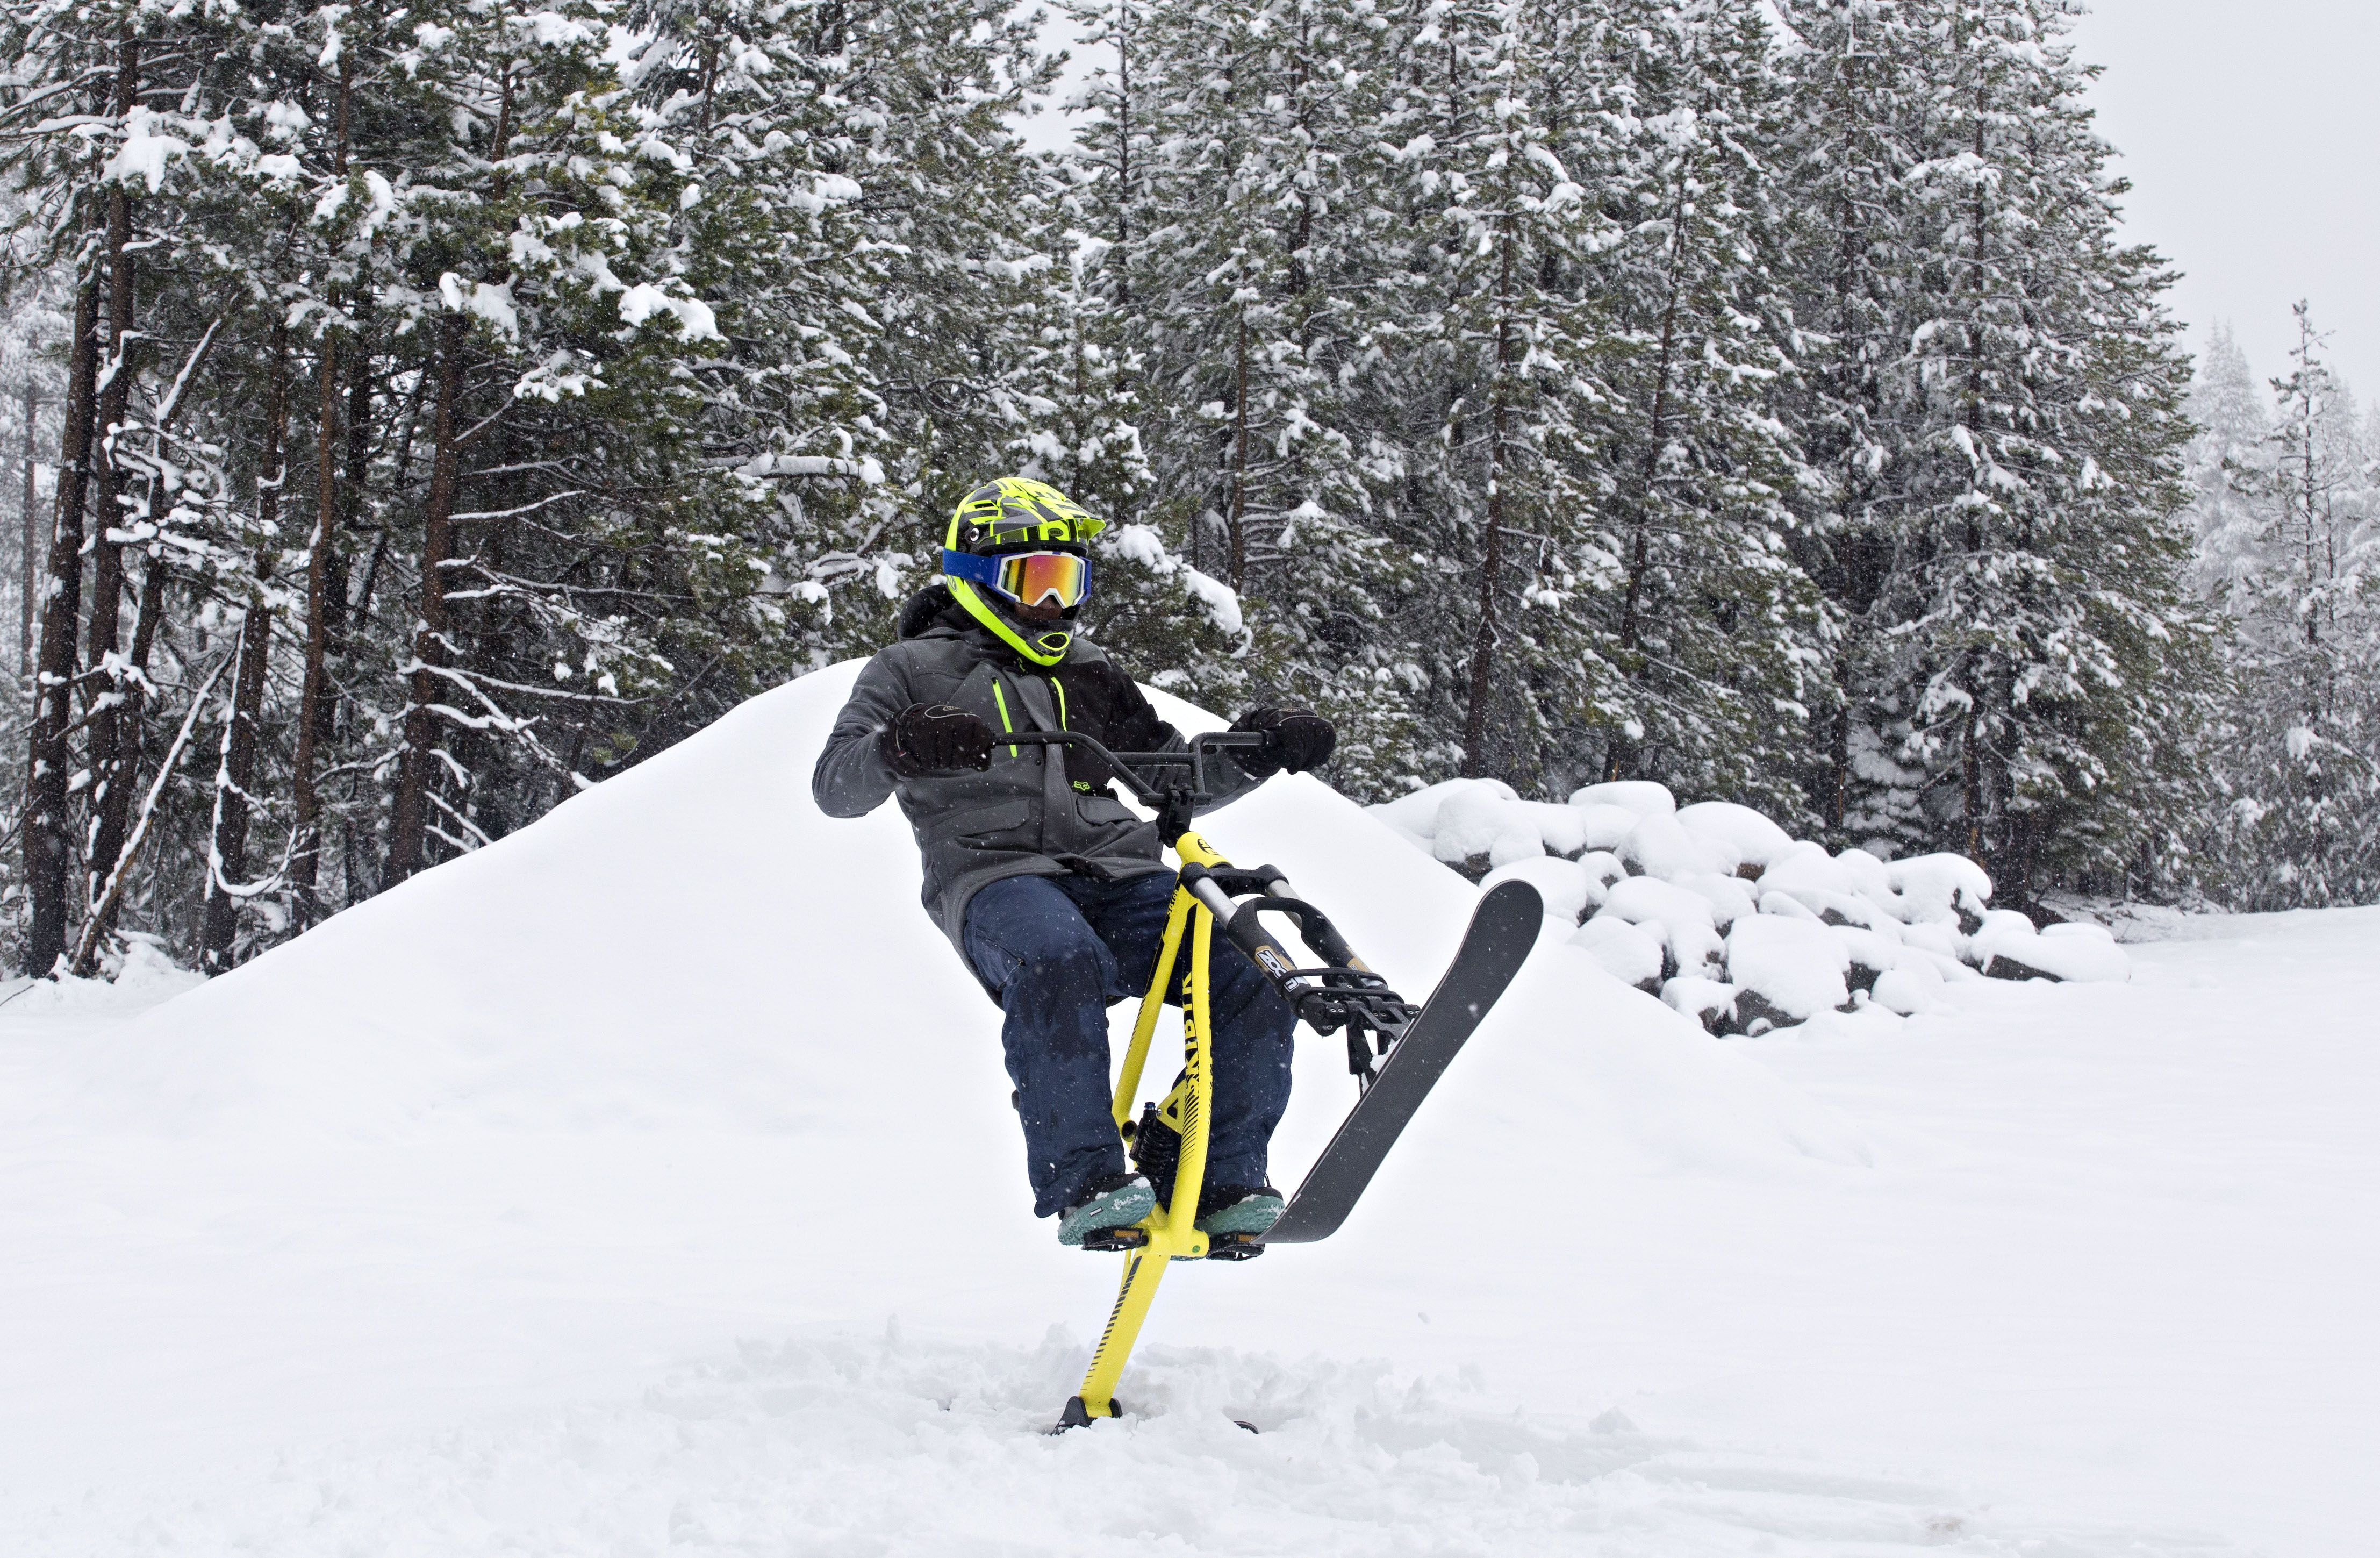 Skibyk Sb100 All Mountain Ski Bike All The Performance You D